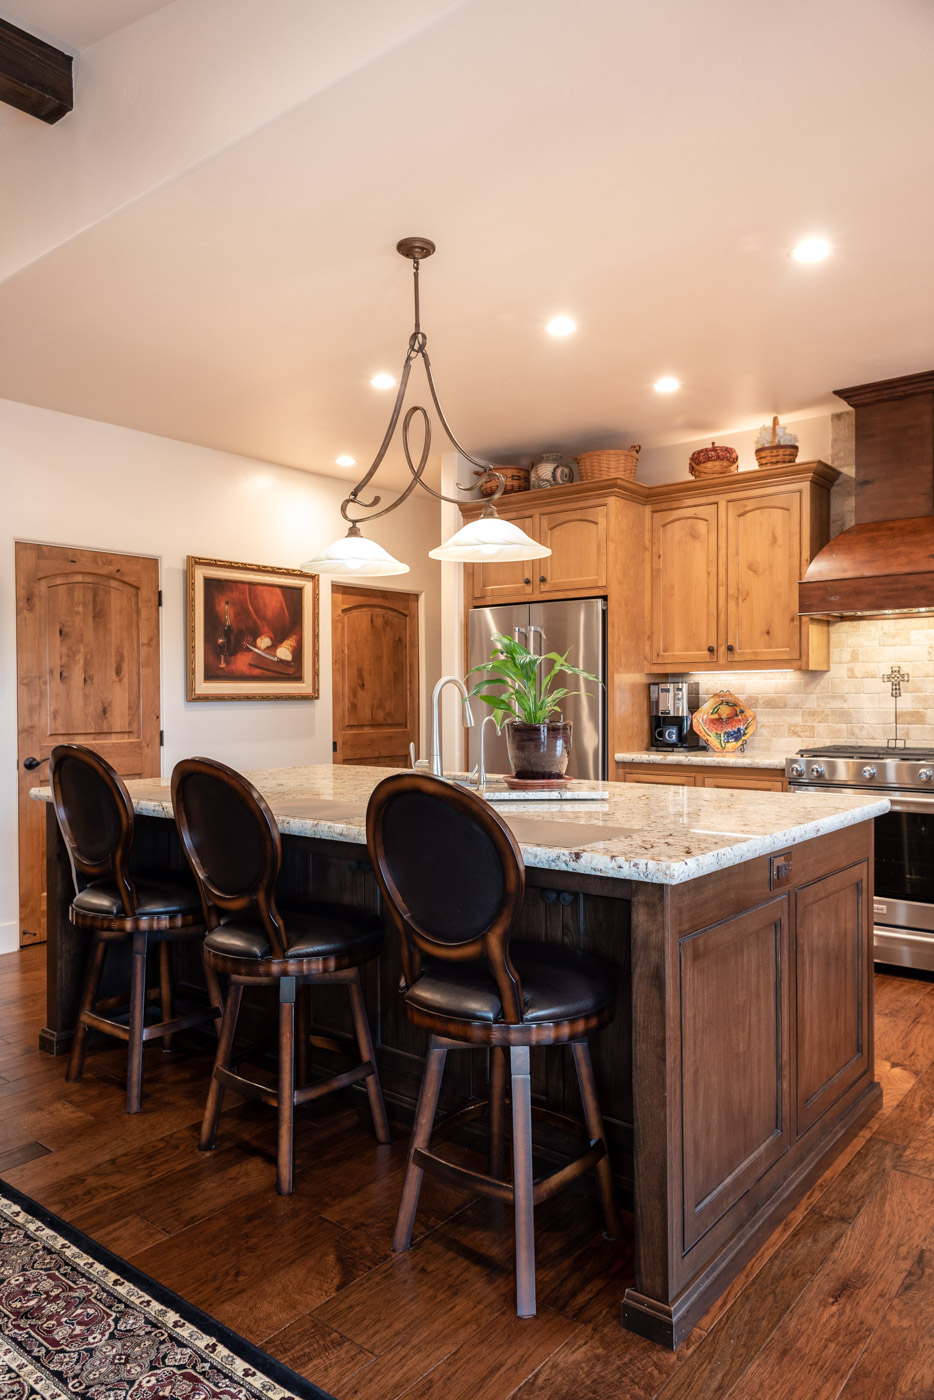 Tuscan Artisan custom stained Alder wood kitchen cabinets and island